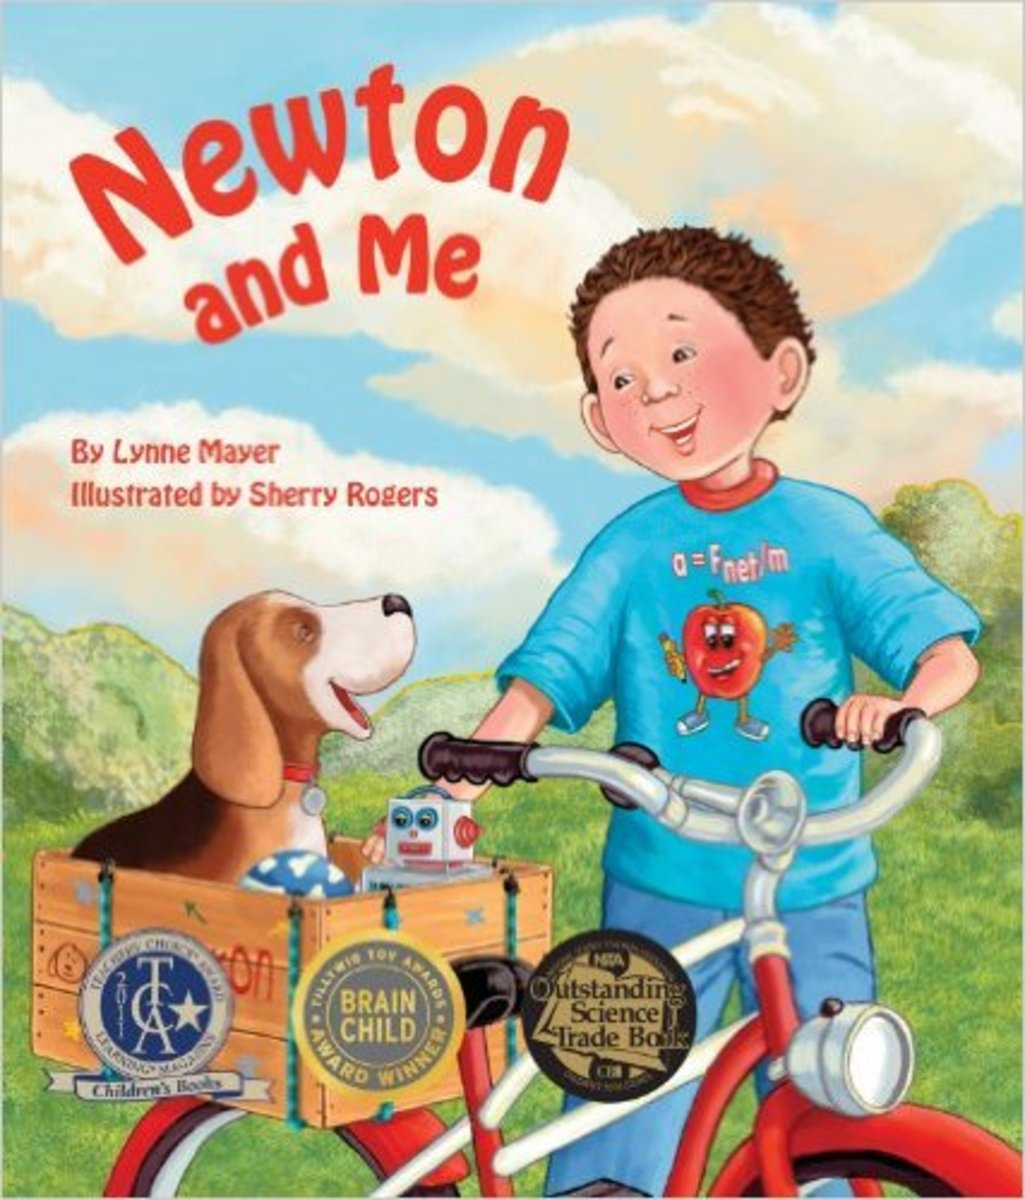 Newton and Me by Lynne Mayer